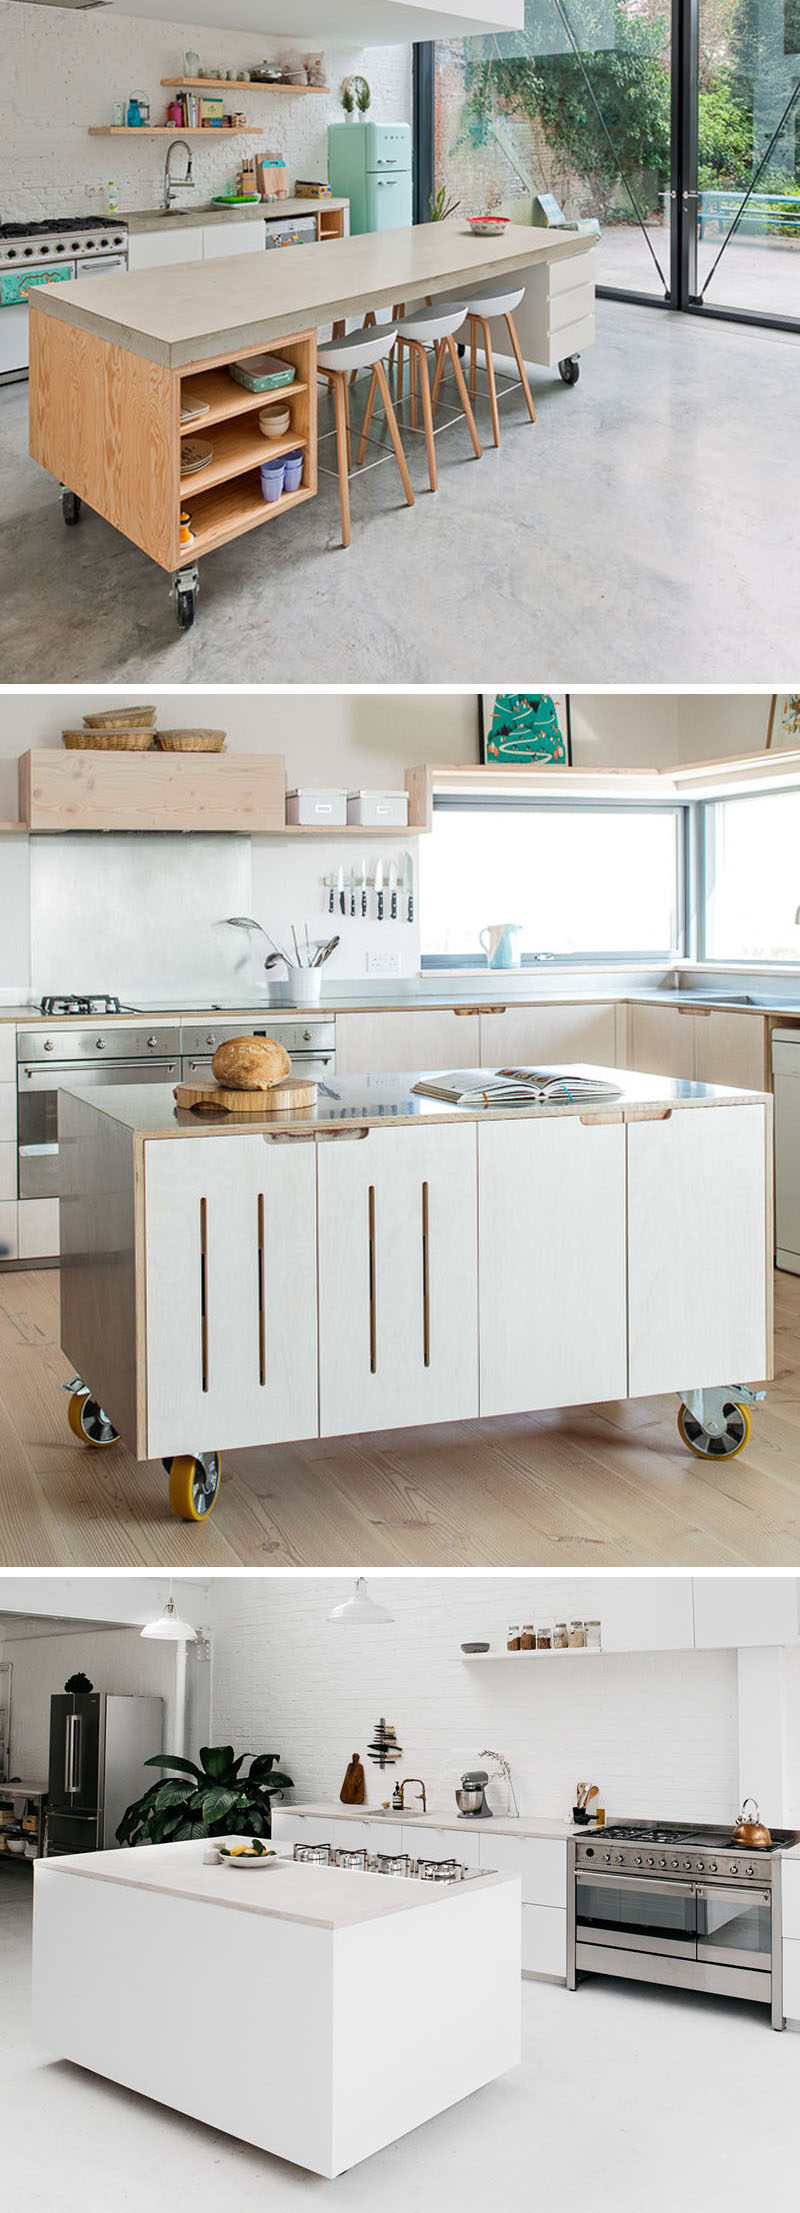 Picture of: 8 Examples Of Kitchens With Movable Islands That Make It Easy To Change The Layout